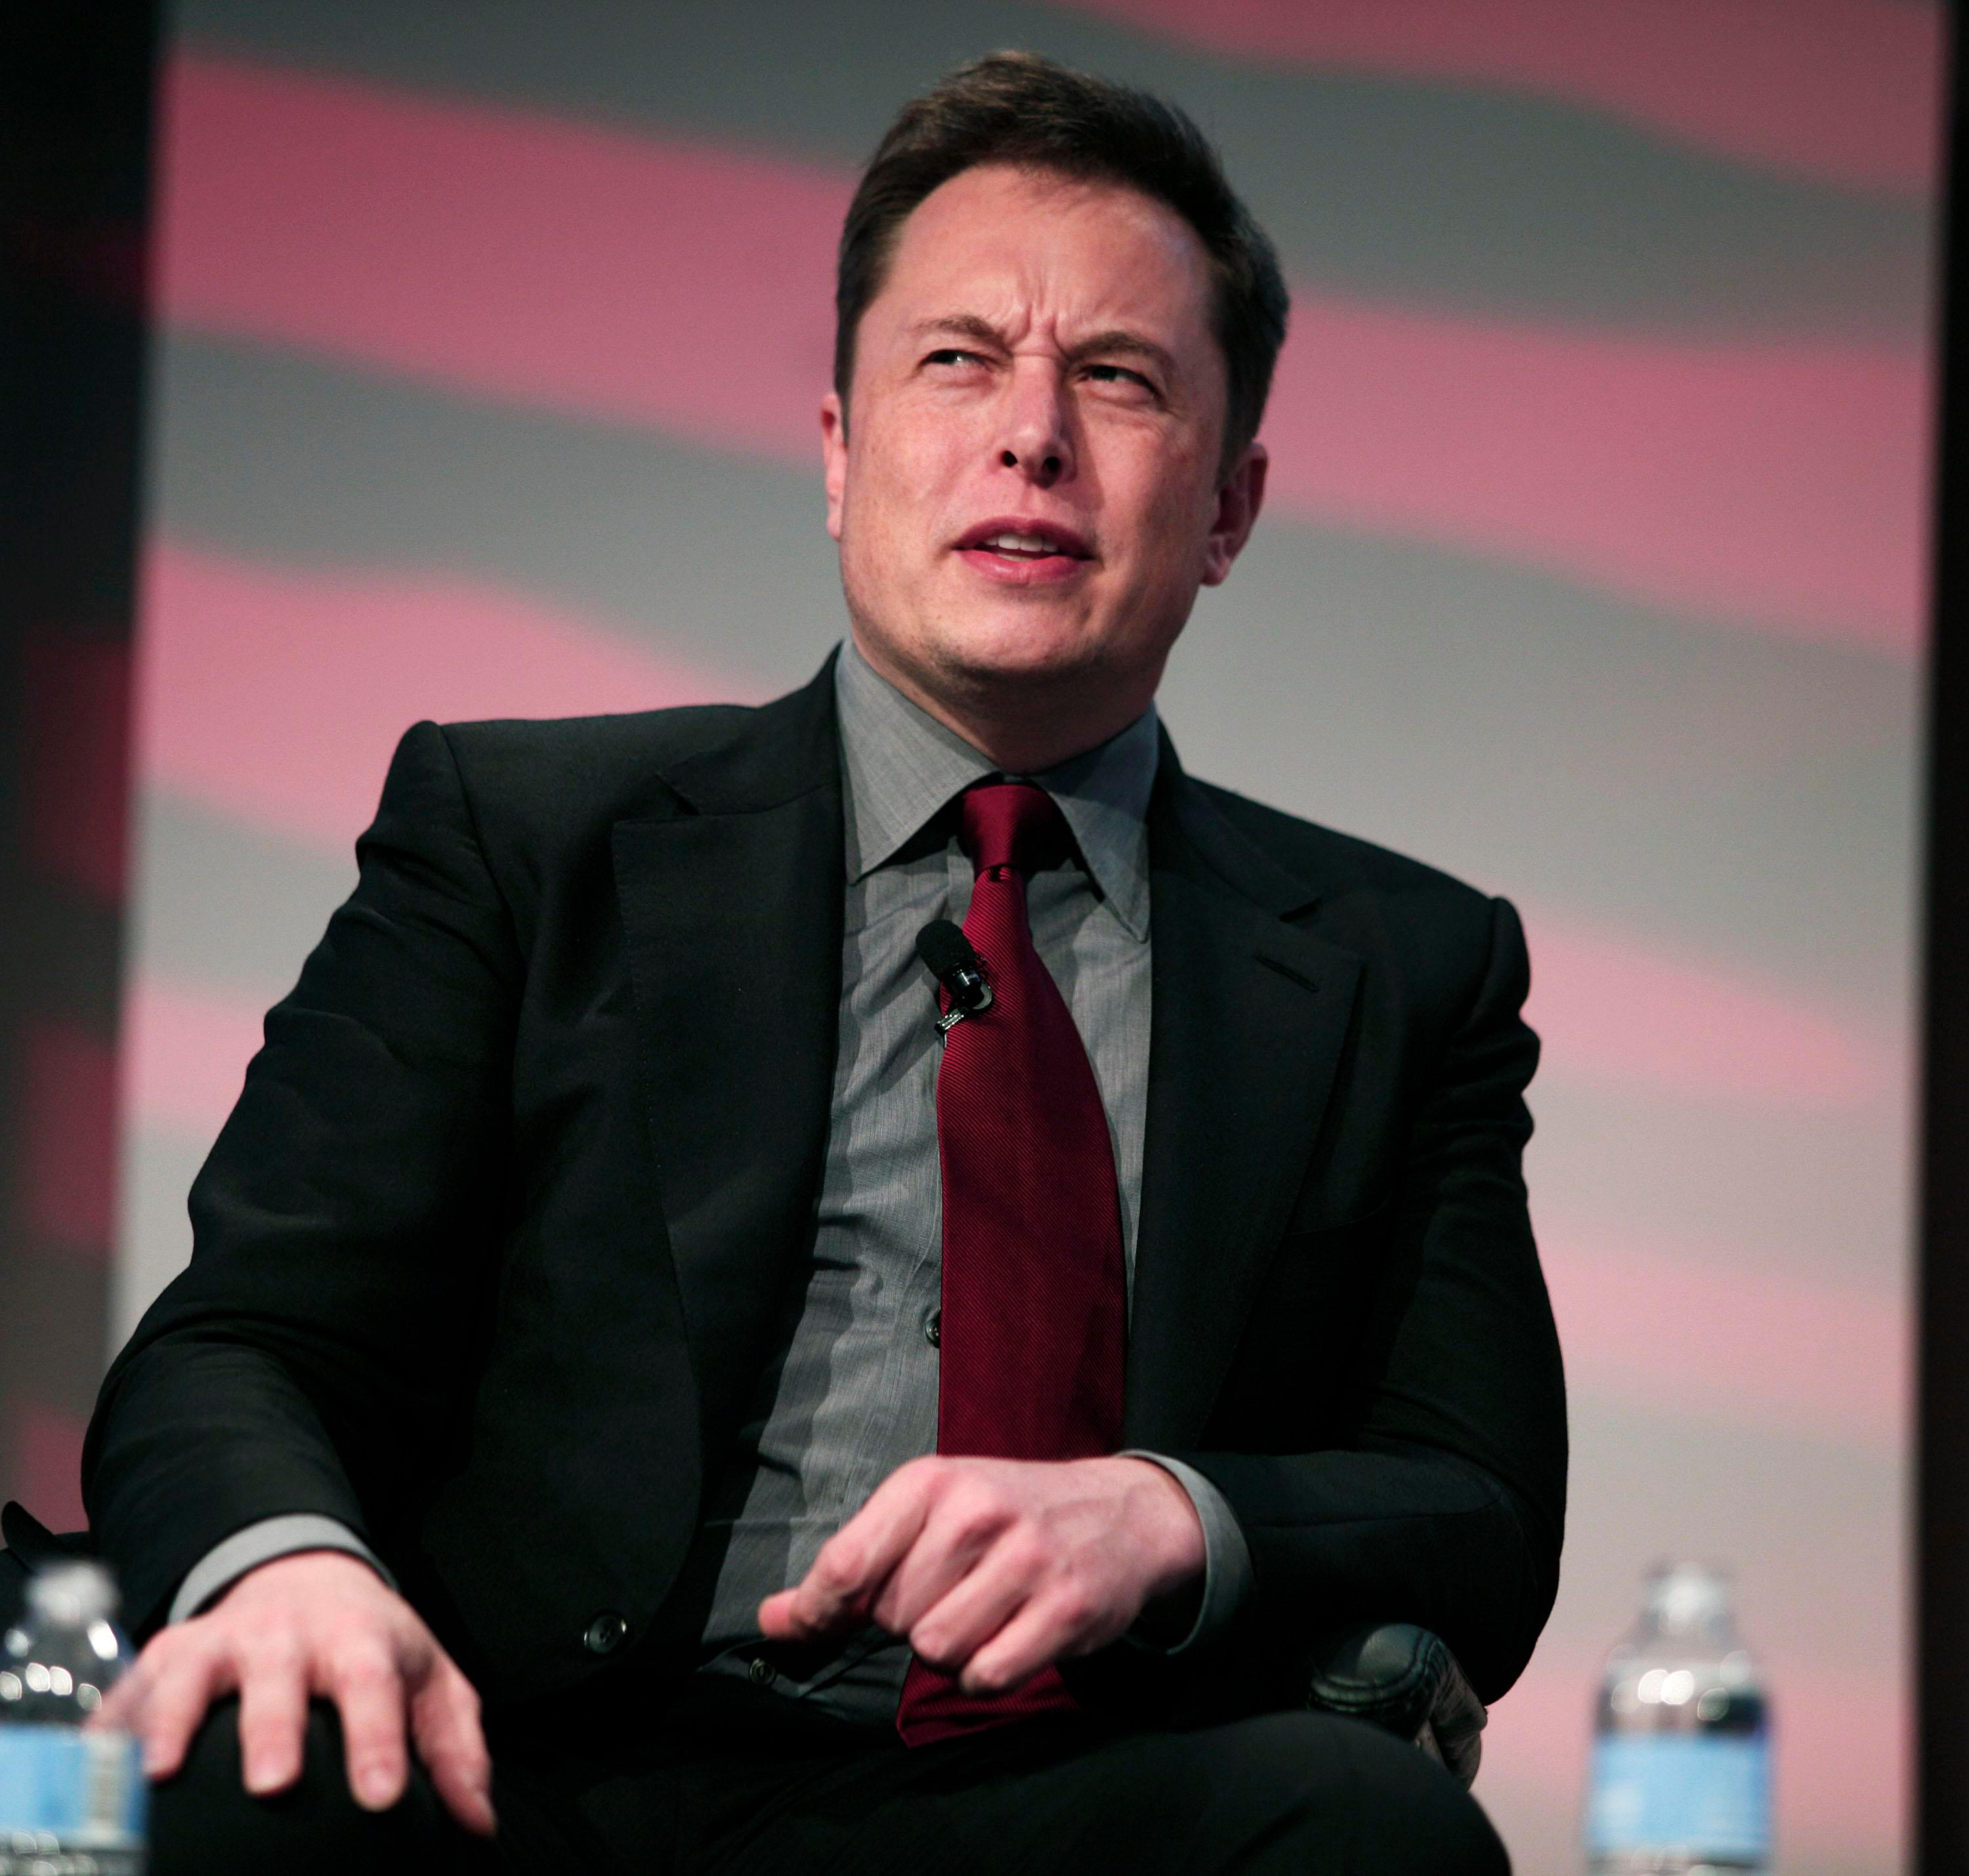 SpaceX boss Elon Musk admits attending infamous Silicon Valley 'sex and drugs party'… but denies it was anything like as wild as sensational book claims